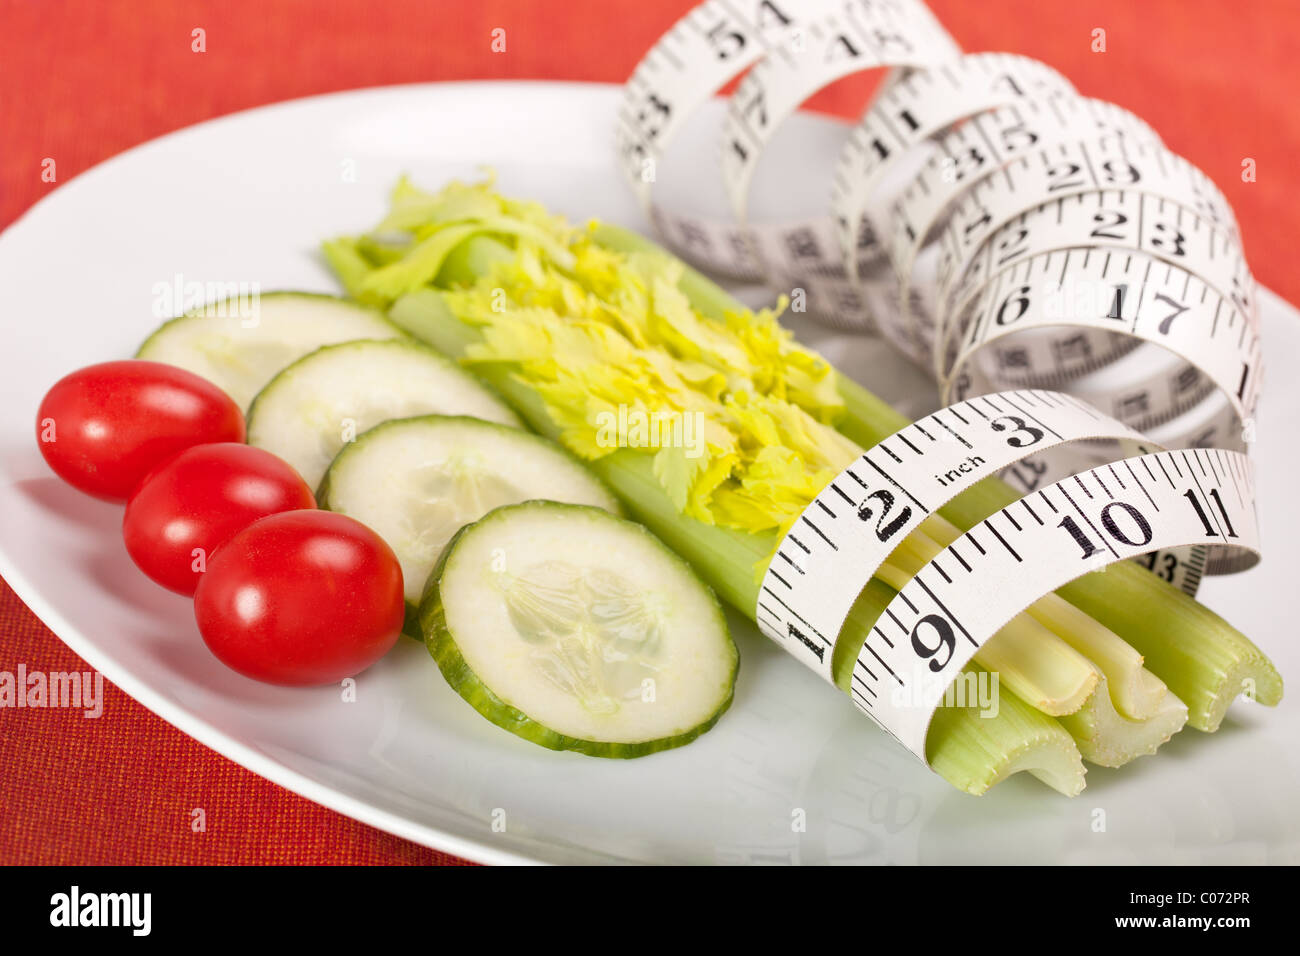 Strict Salad Diet on White Plate with Tape Measure - Stock Image